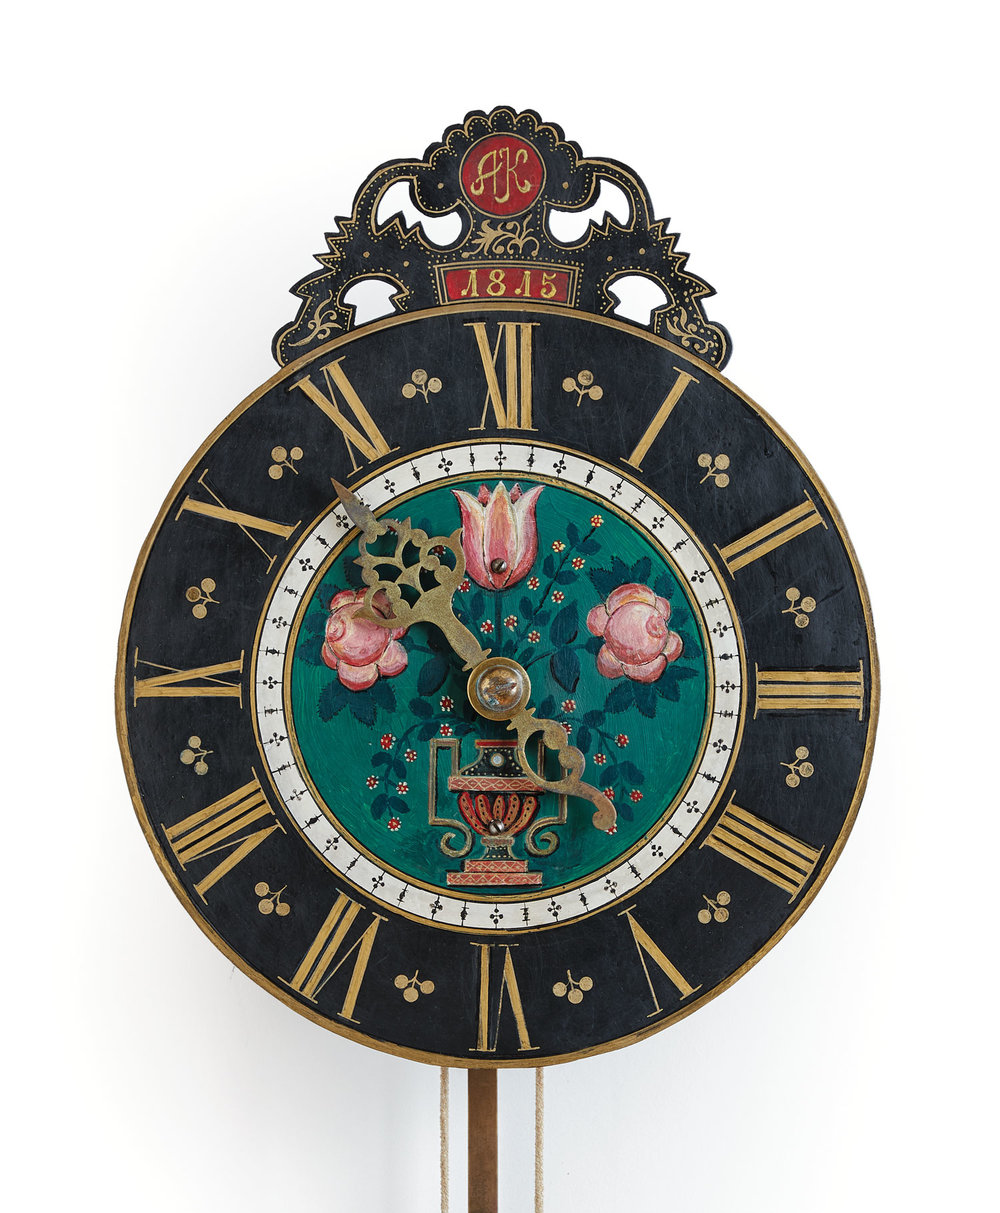 This clock has roses for Rosenthal, the village where the clock was made and whose name translates to 'Valley of Roses'; tulips for the Netherlands, from where the Mennonites descended; and a Greek vase for Taurida, once an ancient Greek province, now part of southern Ukraine, where Rosenthal was later located.